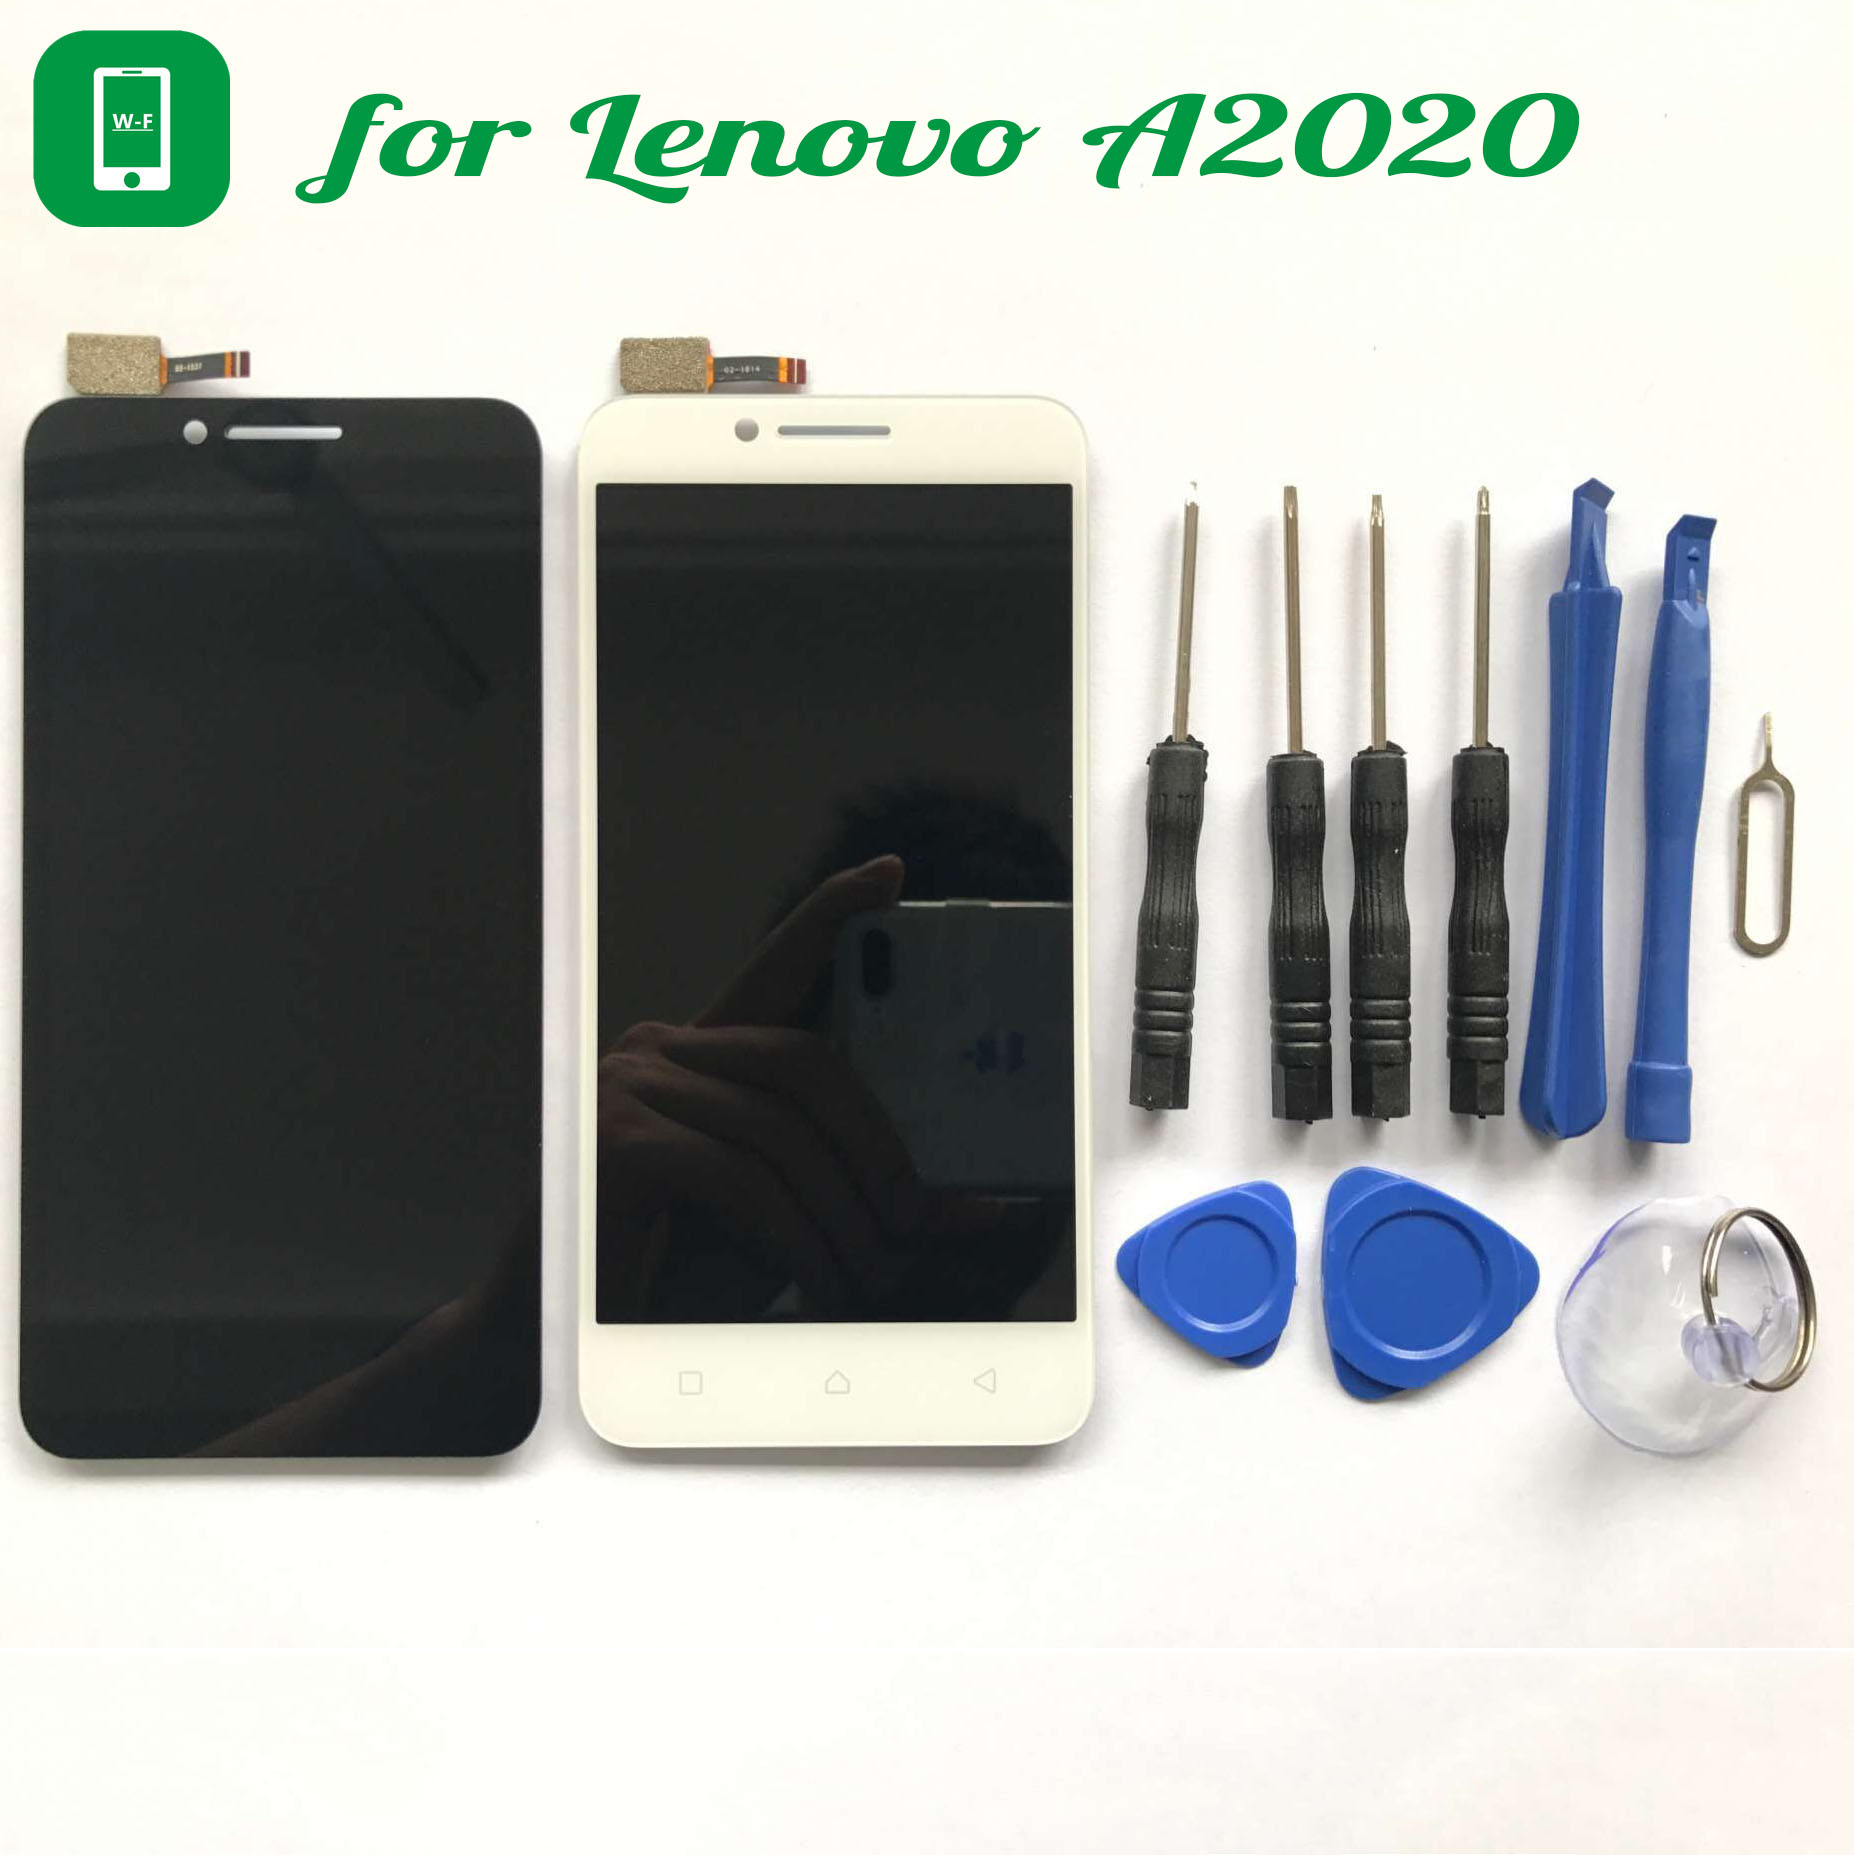 for Lenovo Vibe C A2020 LCD Display+Touch Screen with Tools Glass Panel Digitizer For Lenovo Vibe C A2020 vibe x2 lcd display touch screen panel with frame digitizer accessories for lenovo vibe x2 smartphone white free shipping track